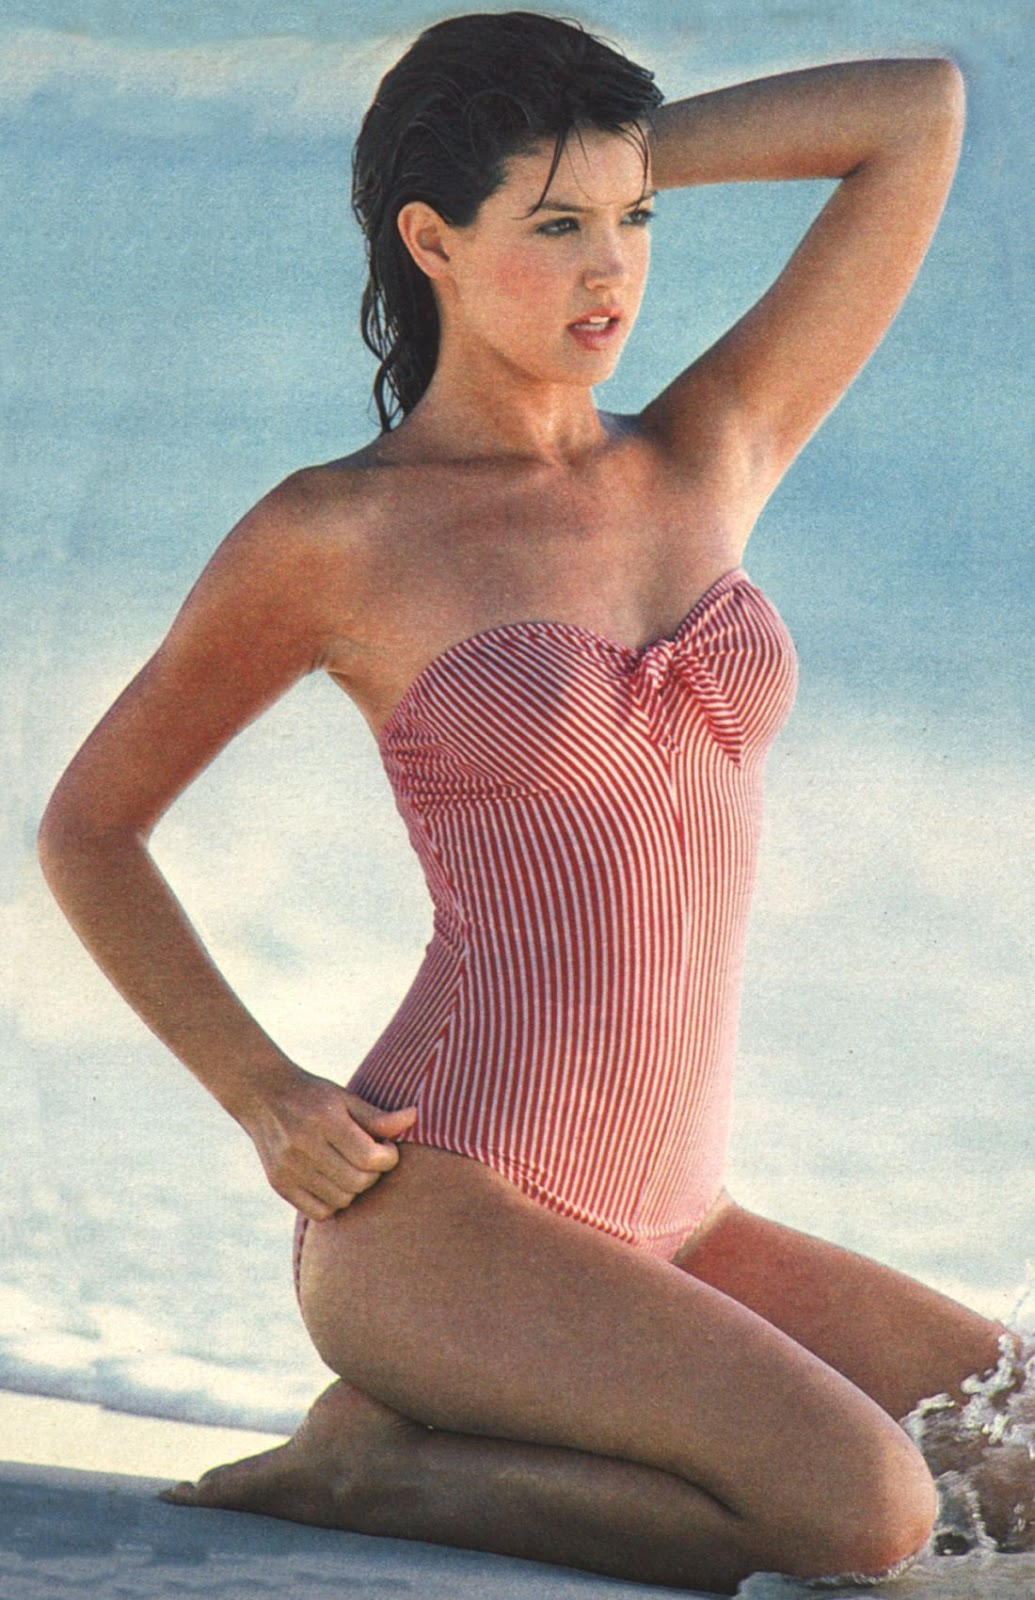 phoebe-cates-celebs-in-swimwear-13687956-1100-1700.jpg